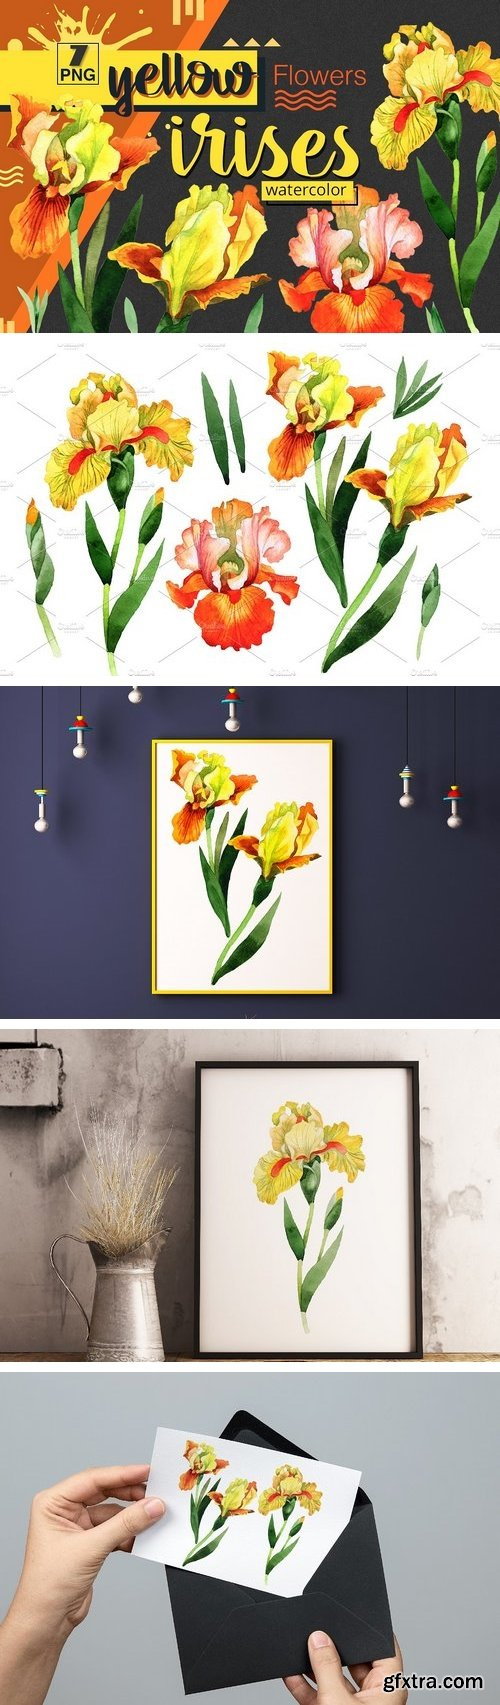 CM - Yellow irises watercolor PNG clipart 1539921